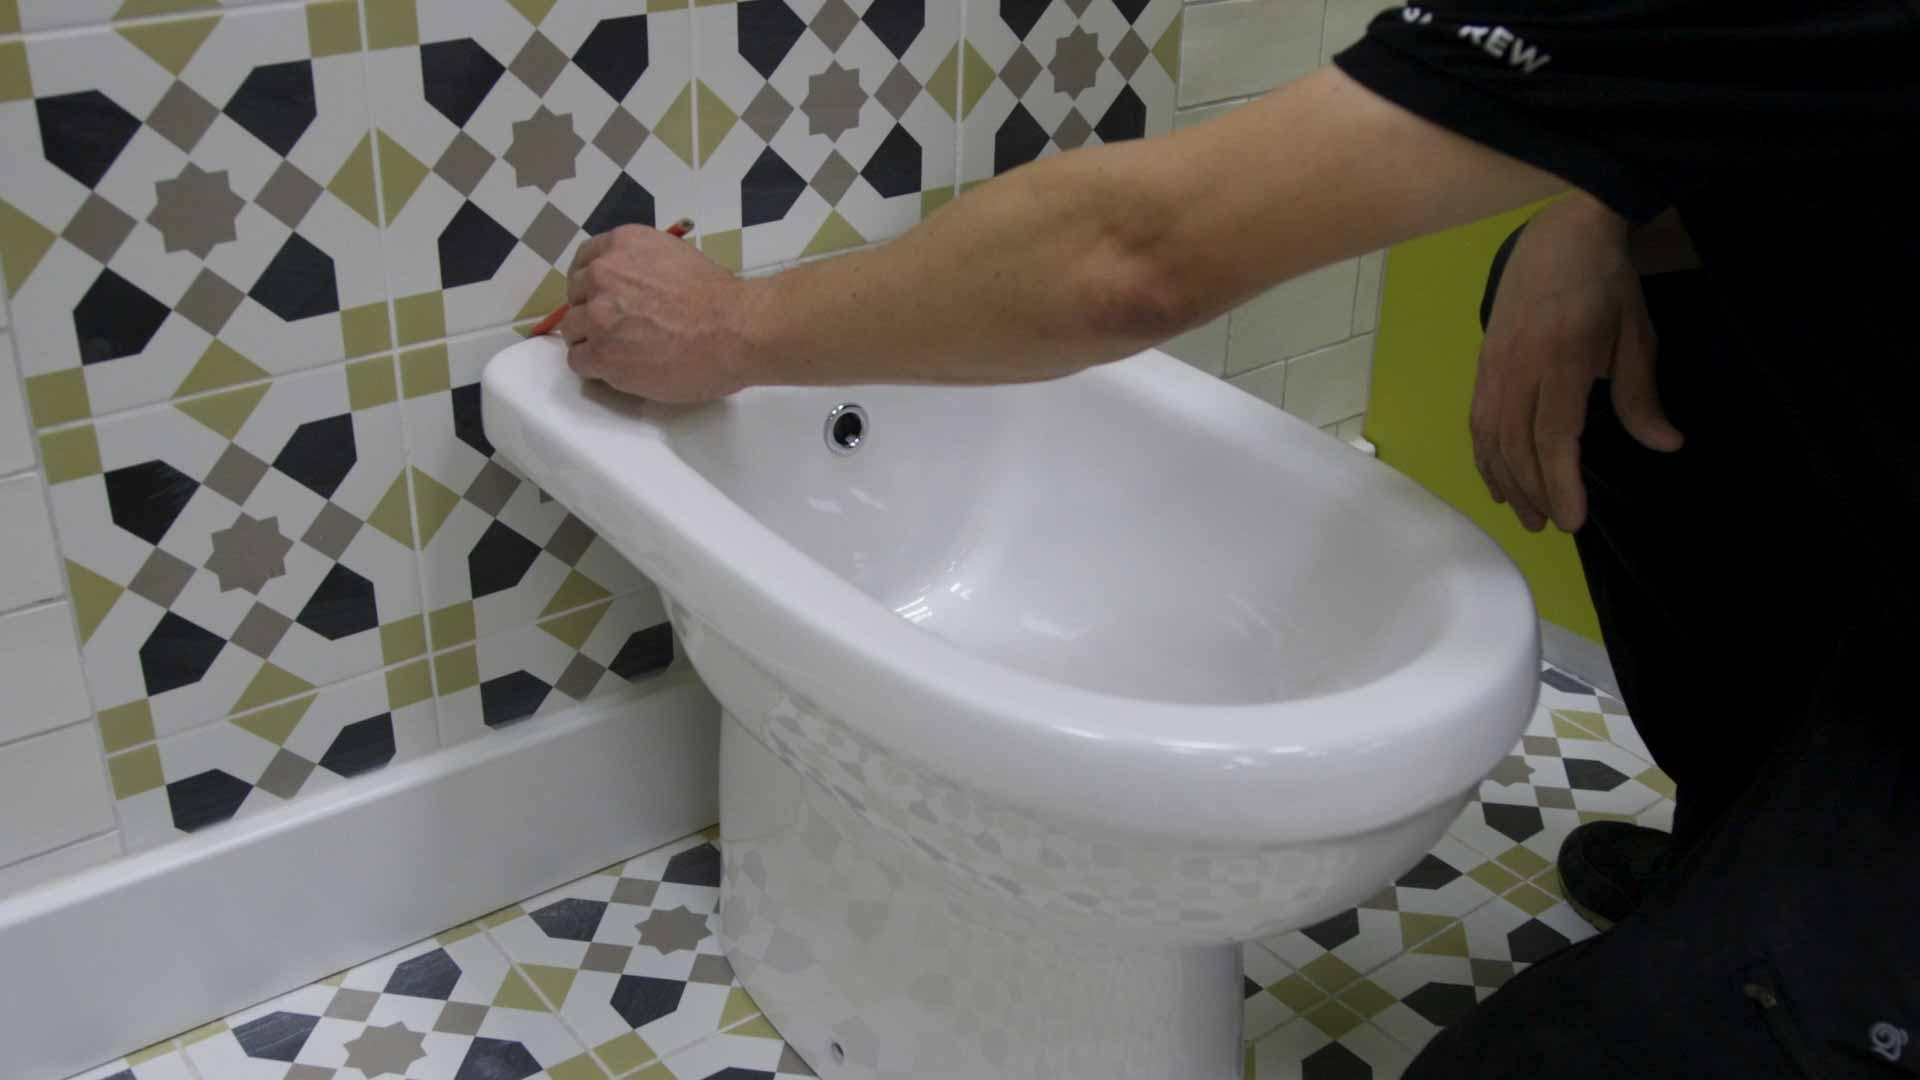 Marking the outline of the bidet